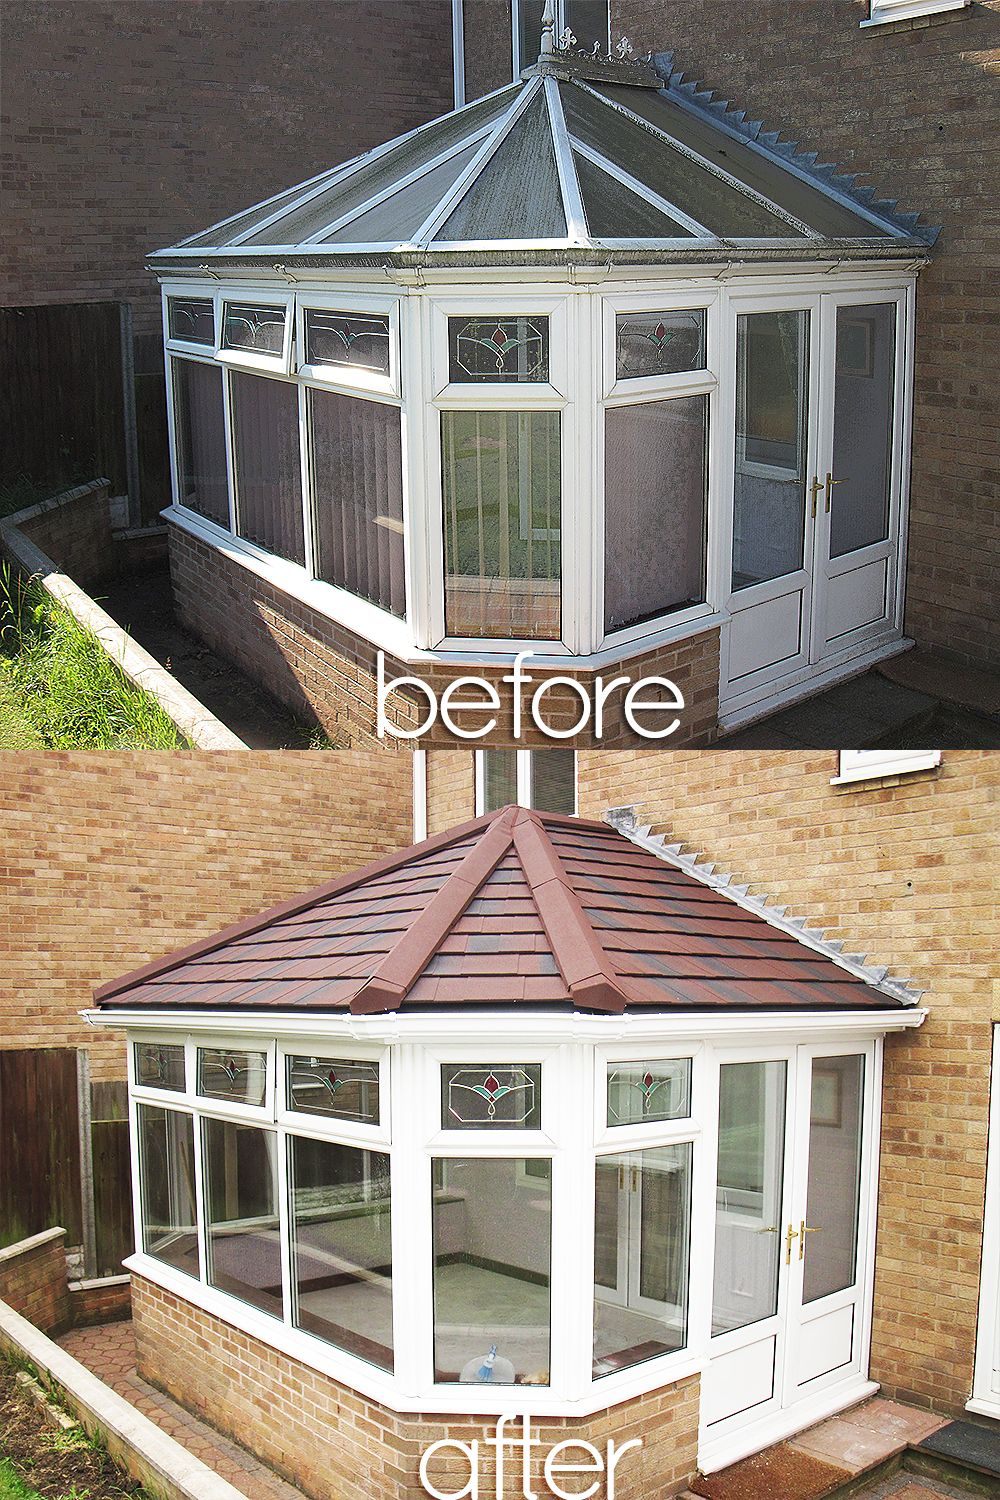 Beautiful Before And Afters Installations Of Supalite Roofing A Fantastic Light Weight Solution Offerin Conservatory Interior Outdoor Rooms House Inspiration